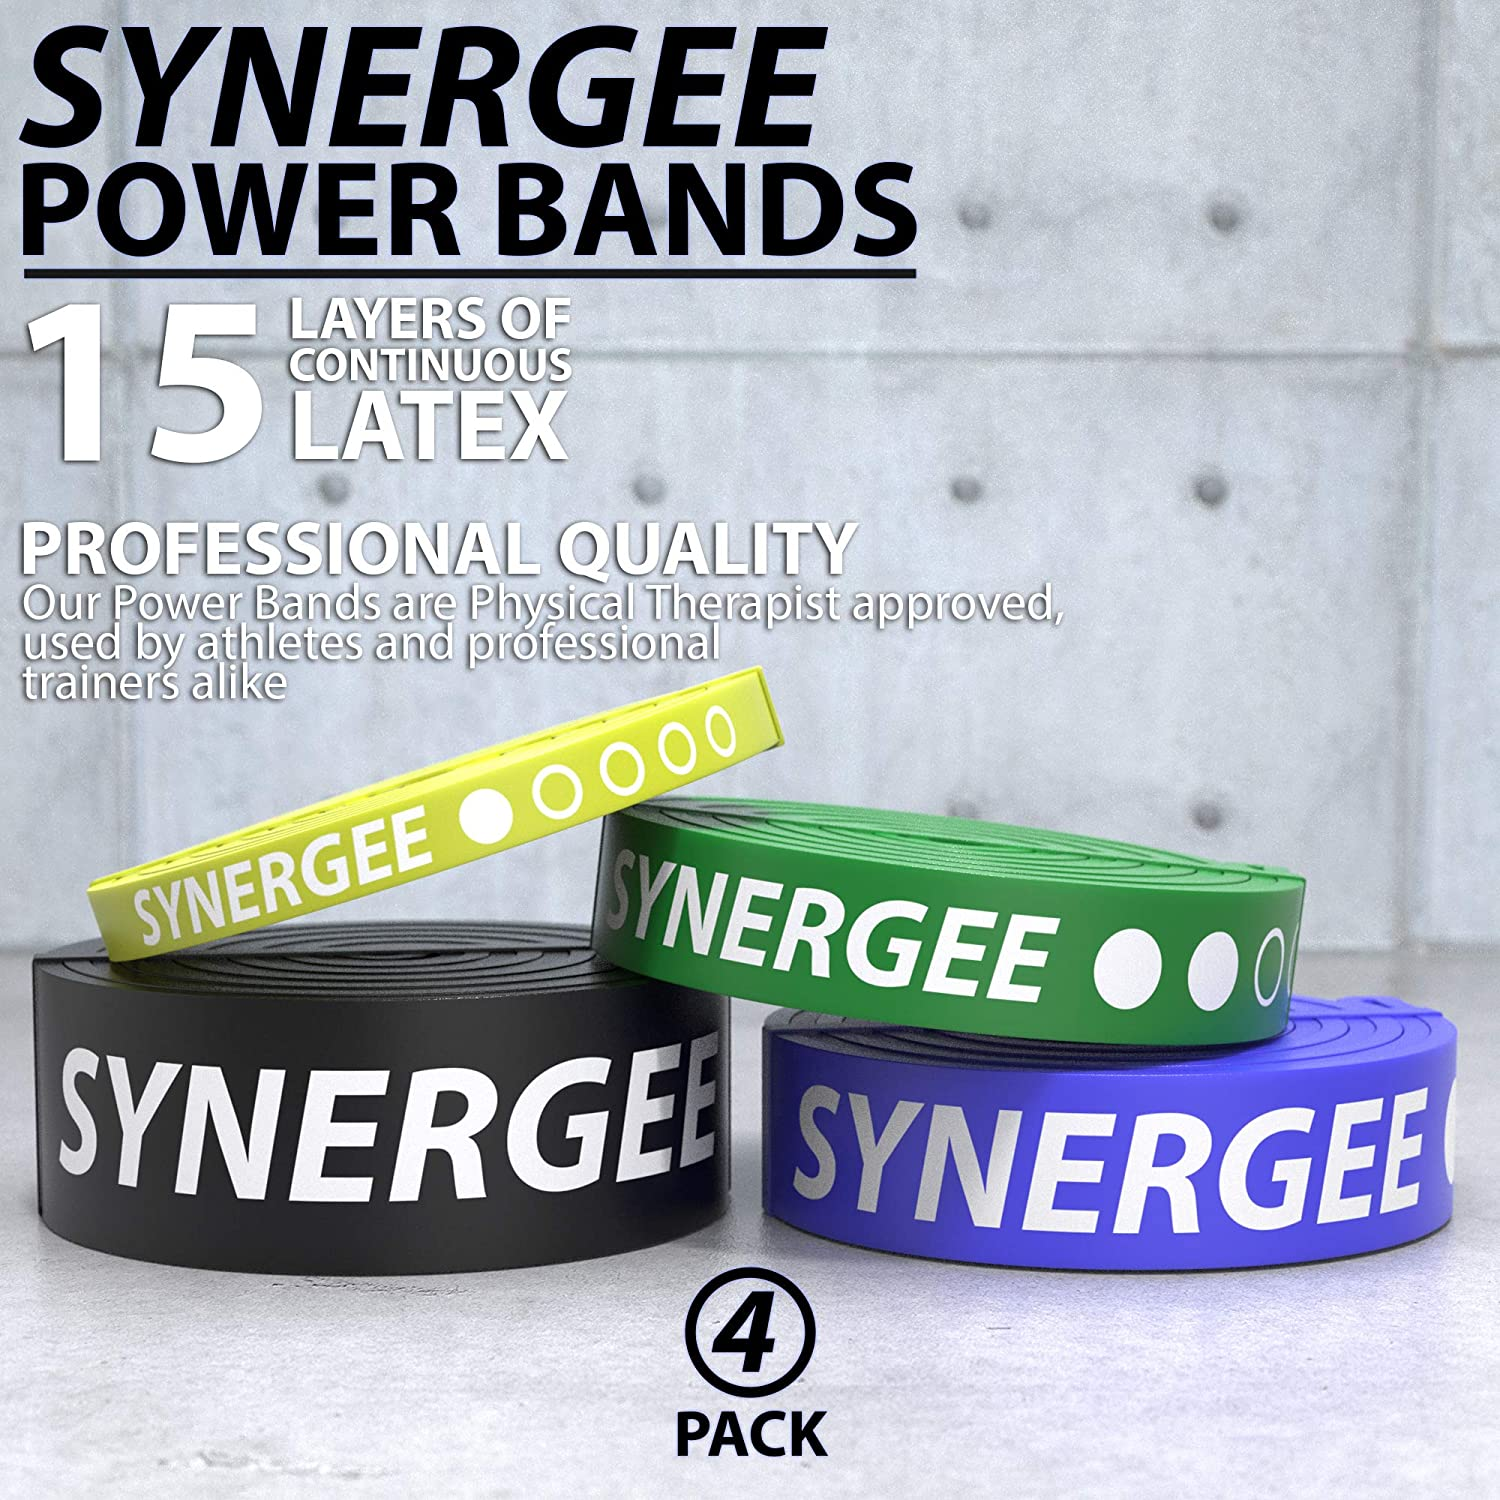 Perfect for Stretching Powerlifting Heavy Duty Resistance Super Bands Resistance Training Power Band Resistance Loop Exercise Bands Mobility /& Powerlifting Bands Synergee Pull Up Assist Bands